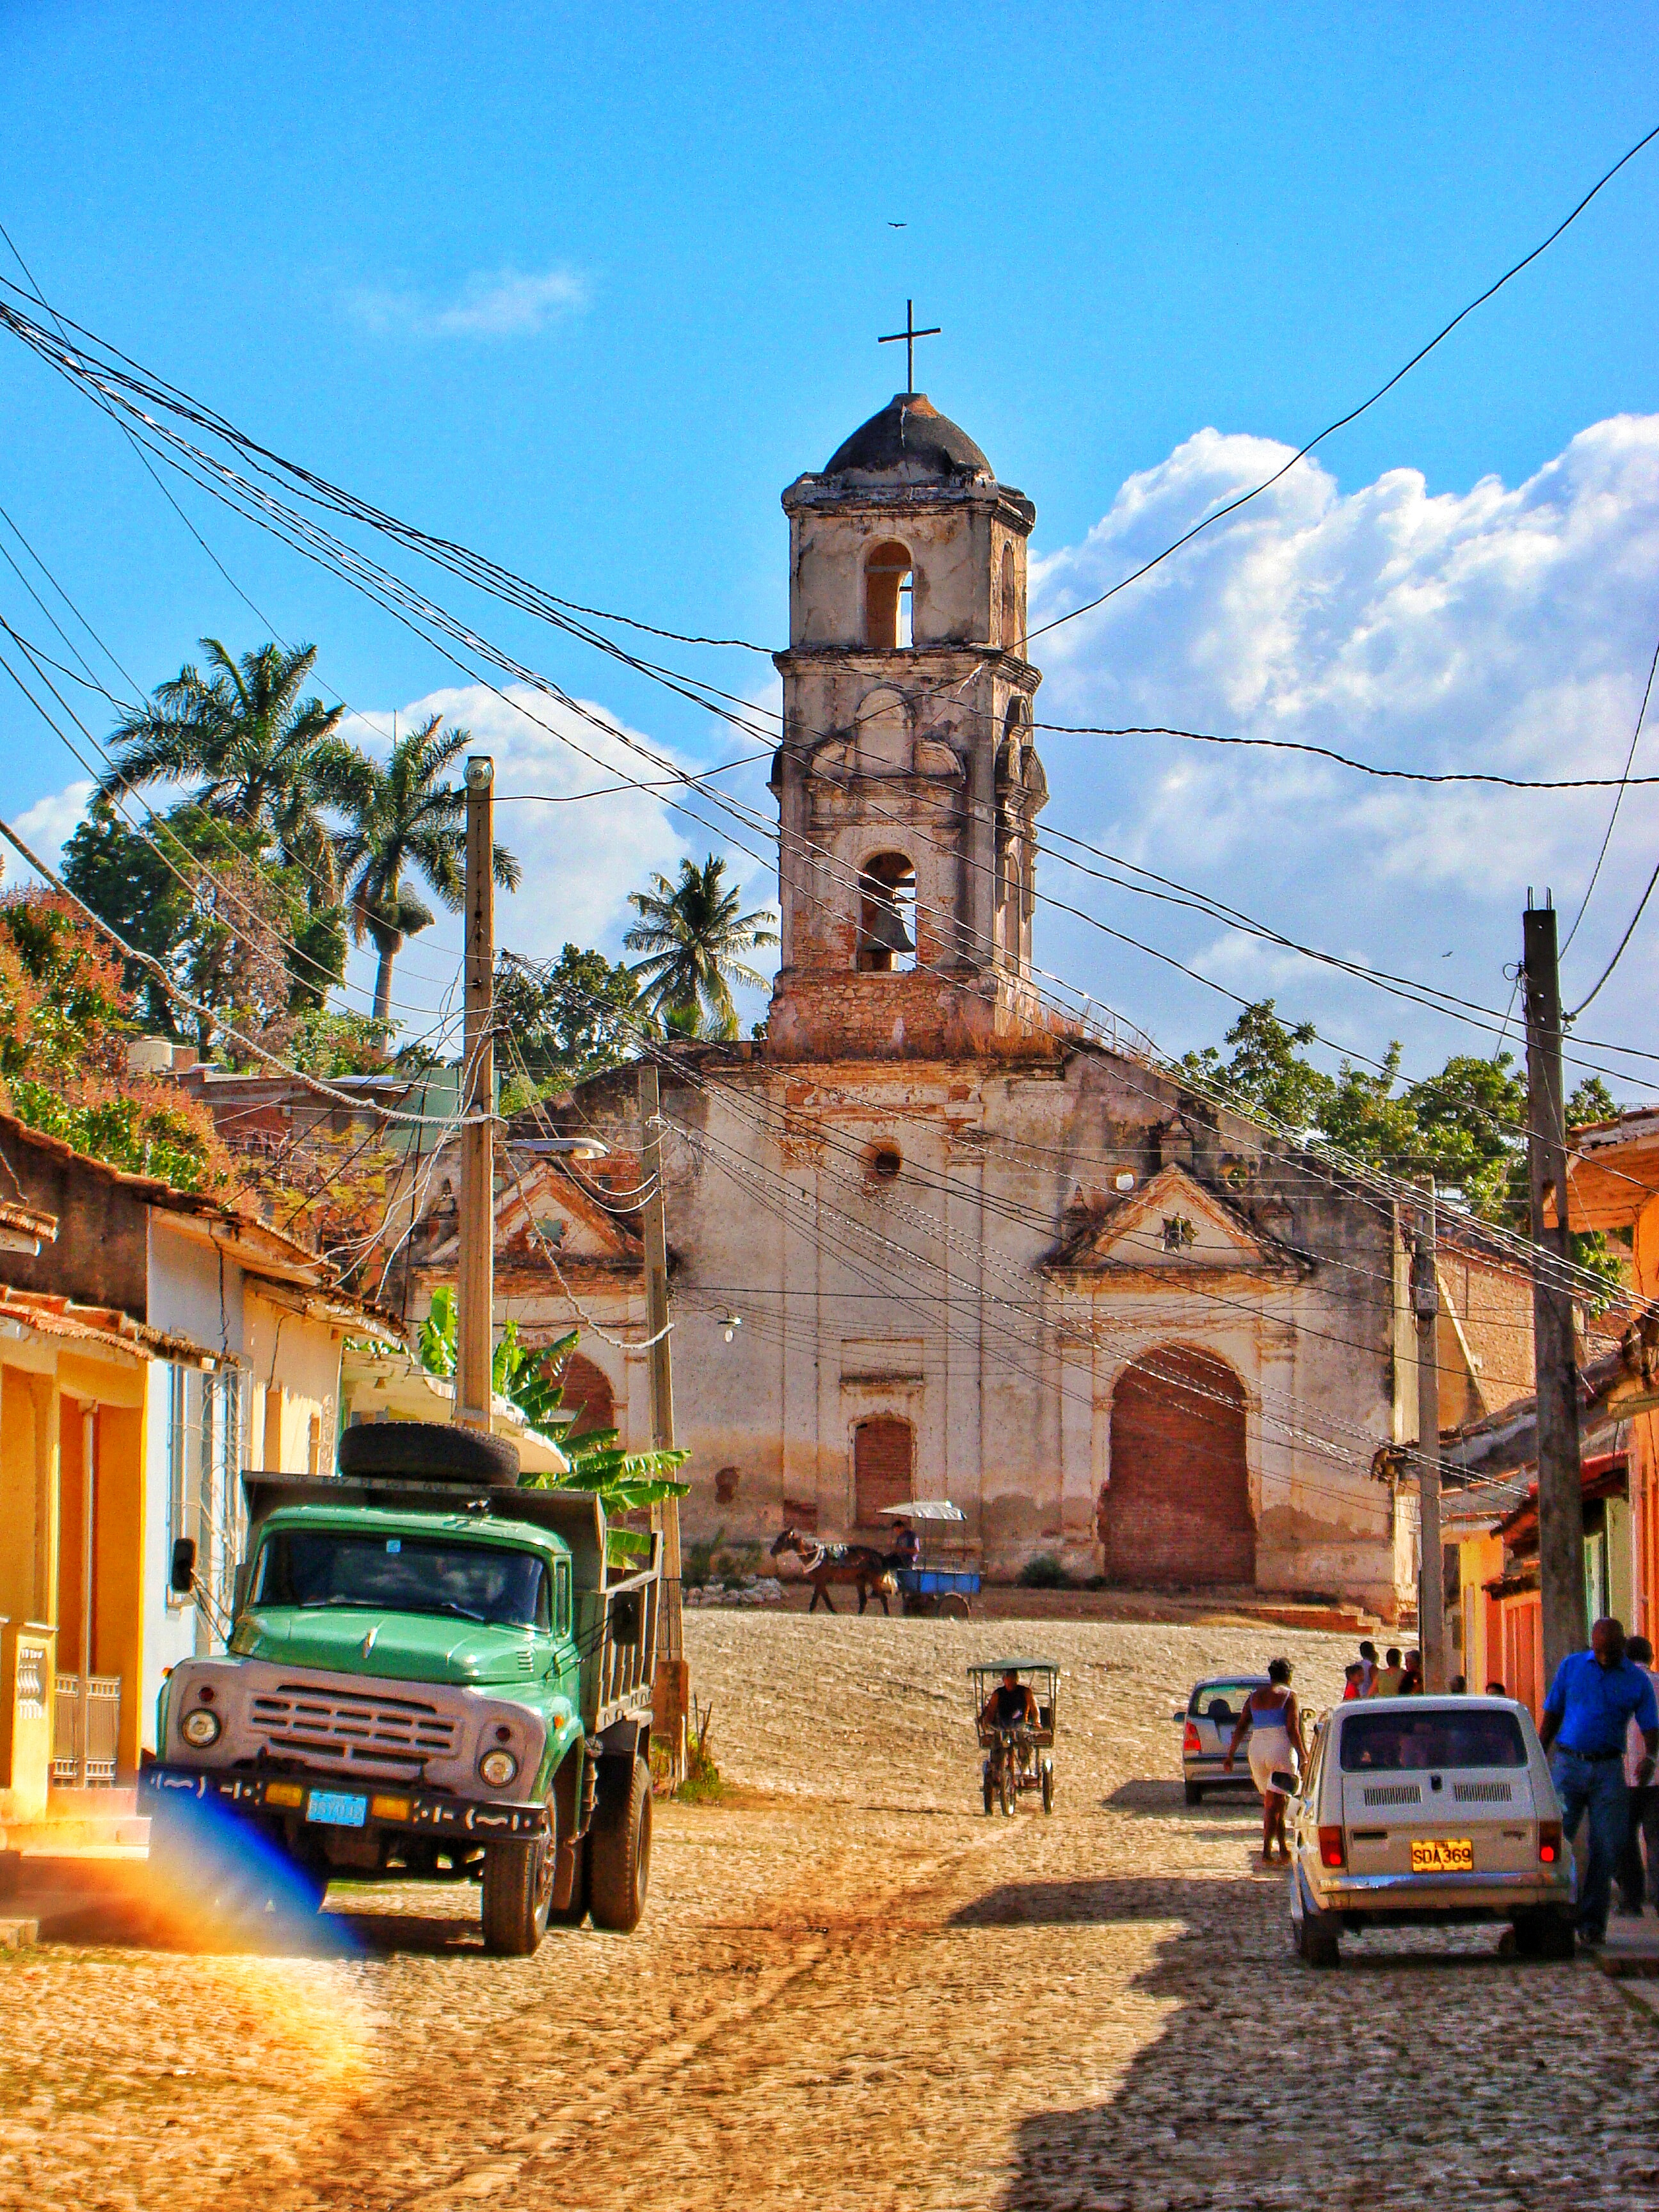 Trinidad Cuba Go On A Day Trip To Picture Perfect Trinidad Cuba World Wanderista